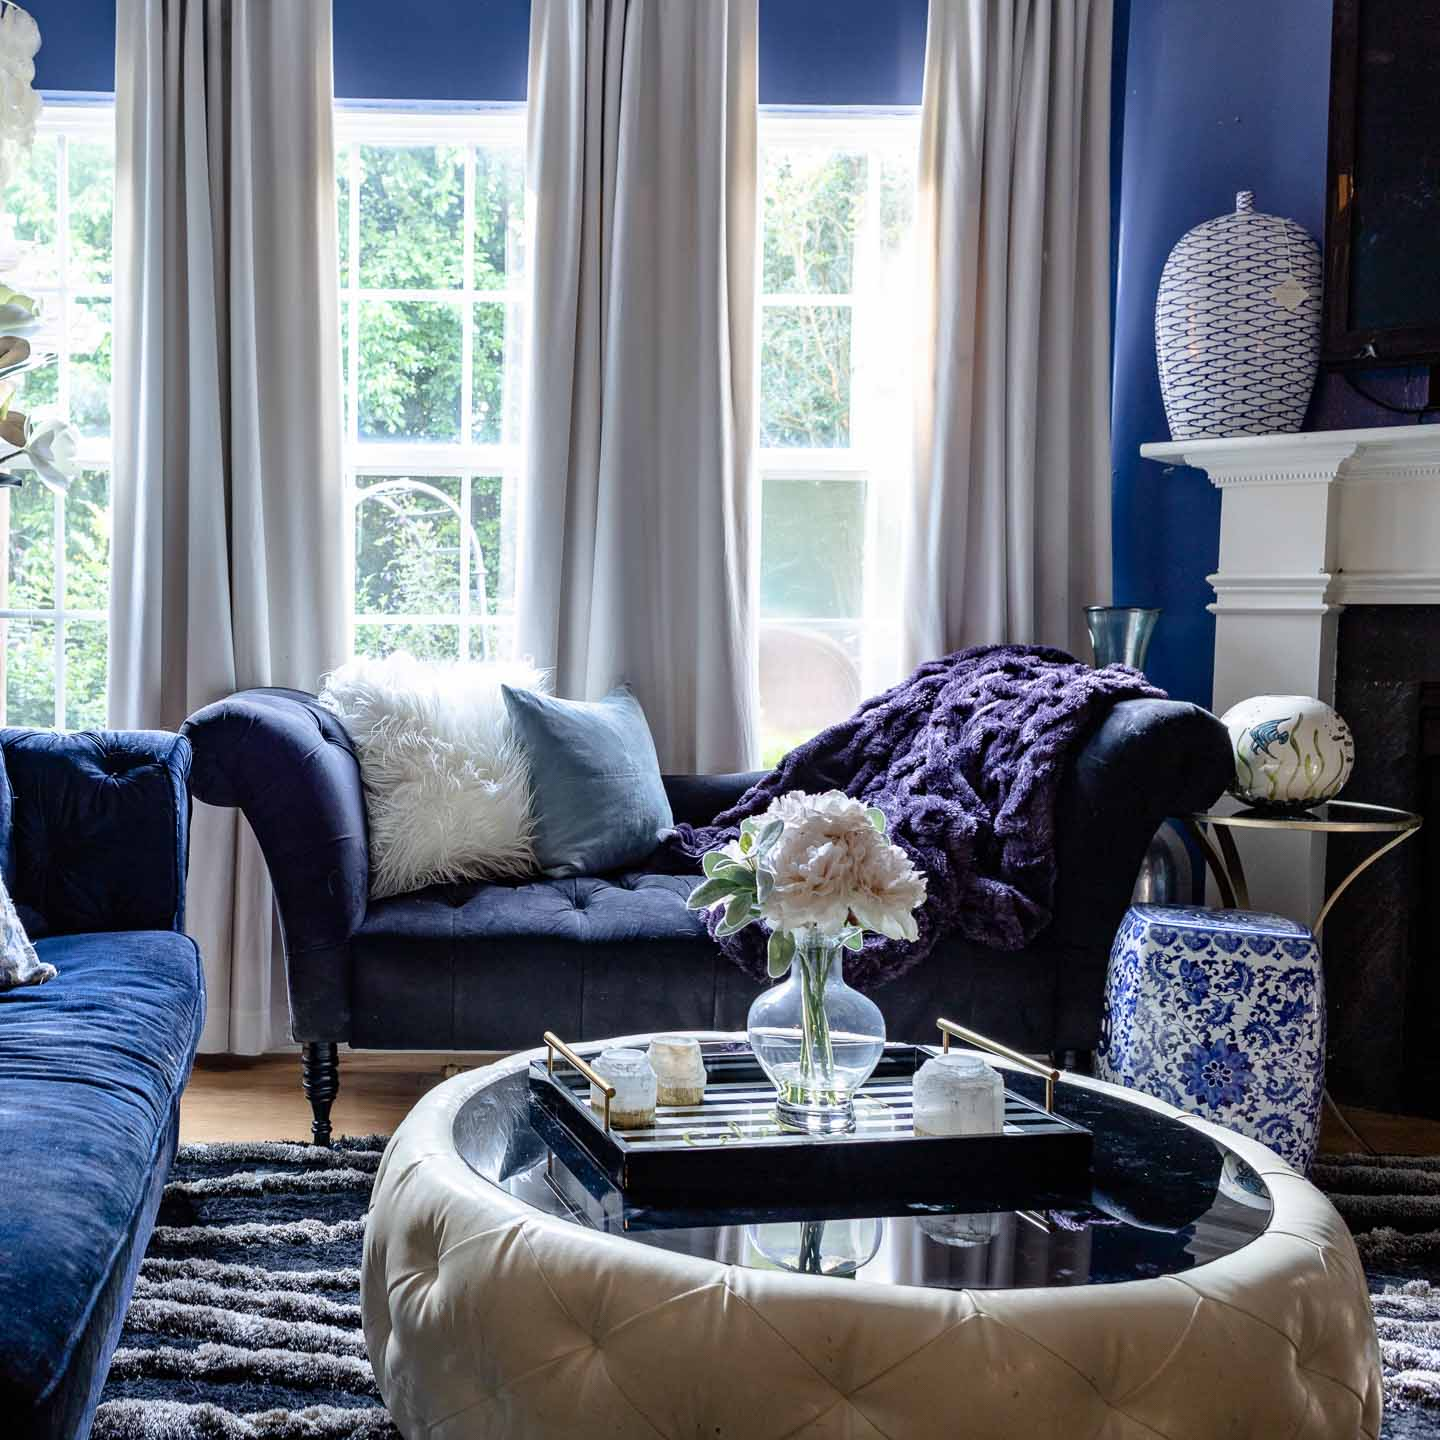 Home Design Color Ideas: Blue And White Decorating Ideas: 10 Ways To Decorate With